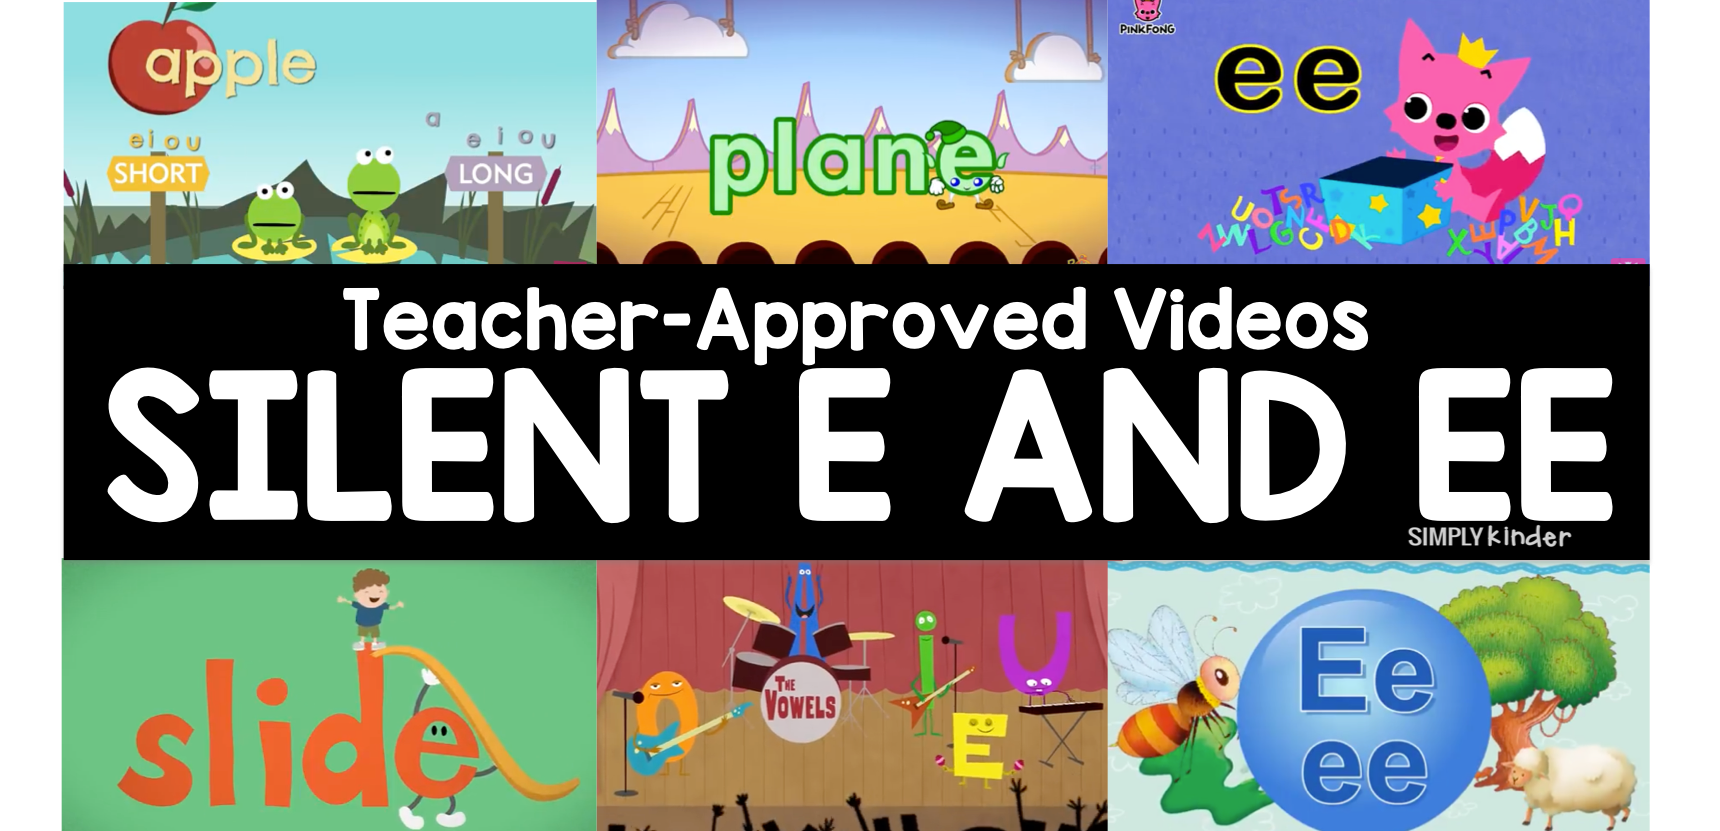 Teacher-Approved Silent E and Double E Videos